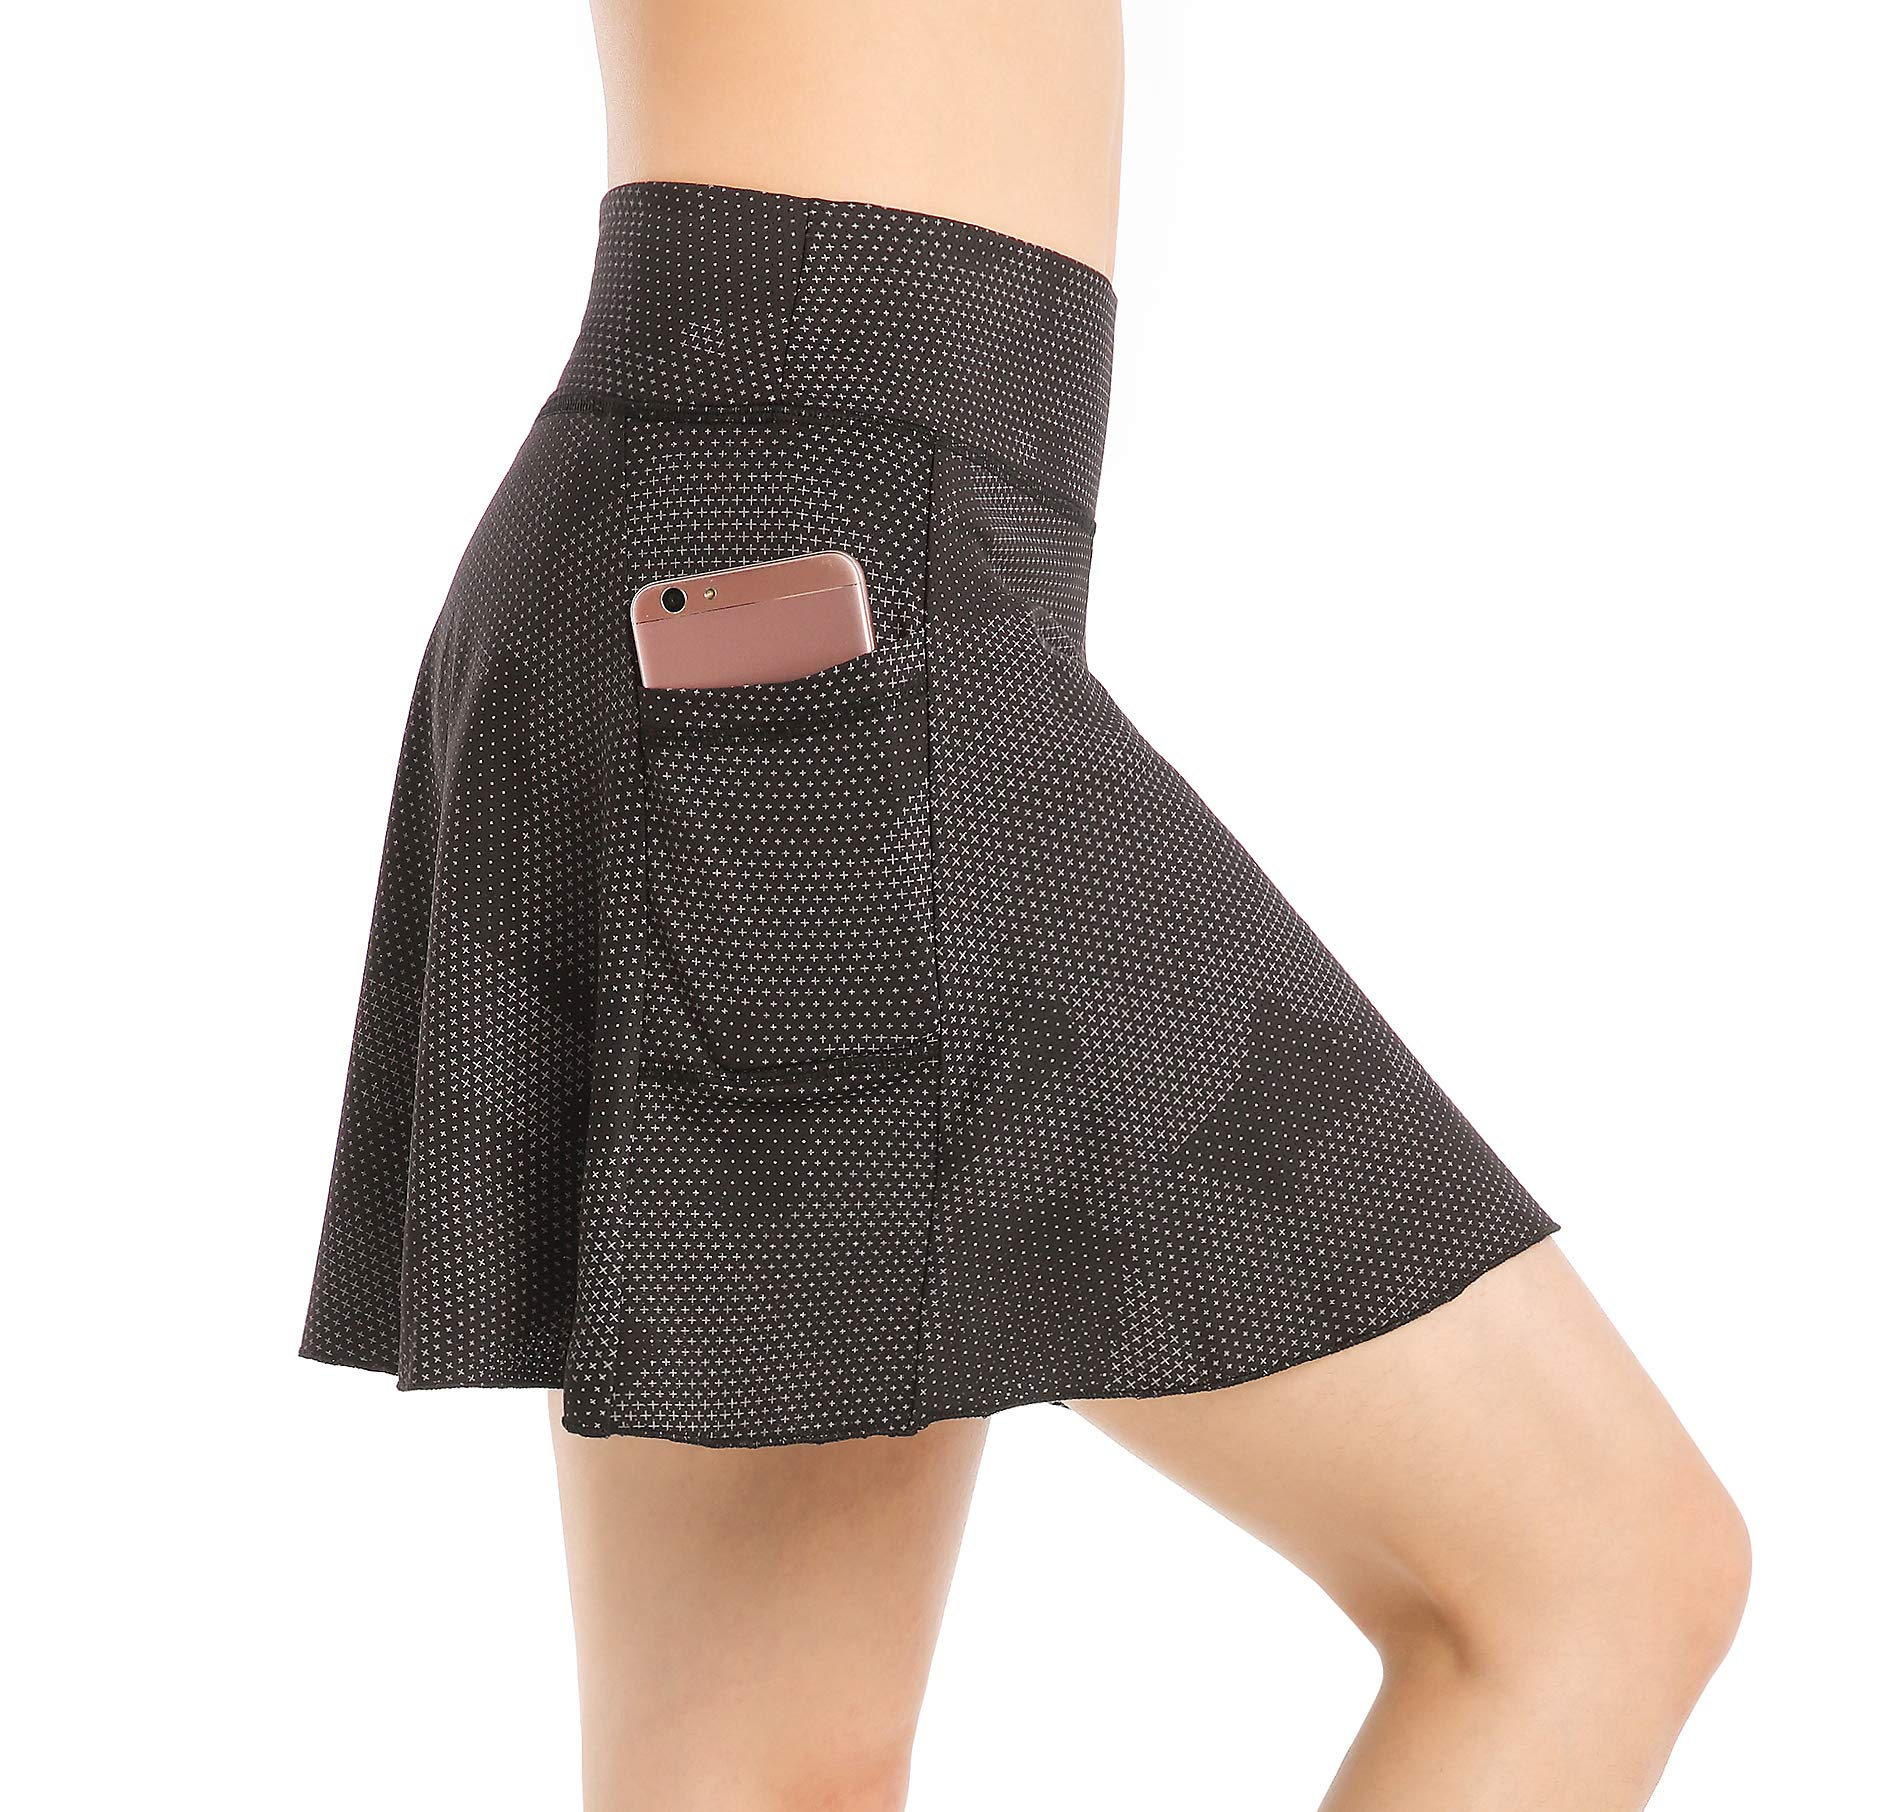 EAST HONG Women's Golf Skort Tennis Running Workout Skort (L, Star Point Black) by EAST HONG